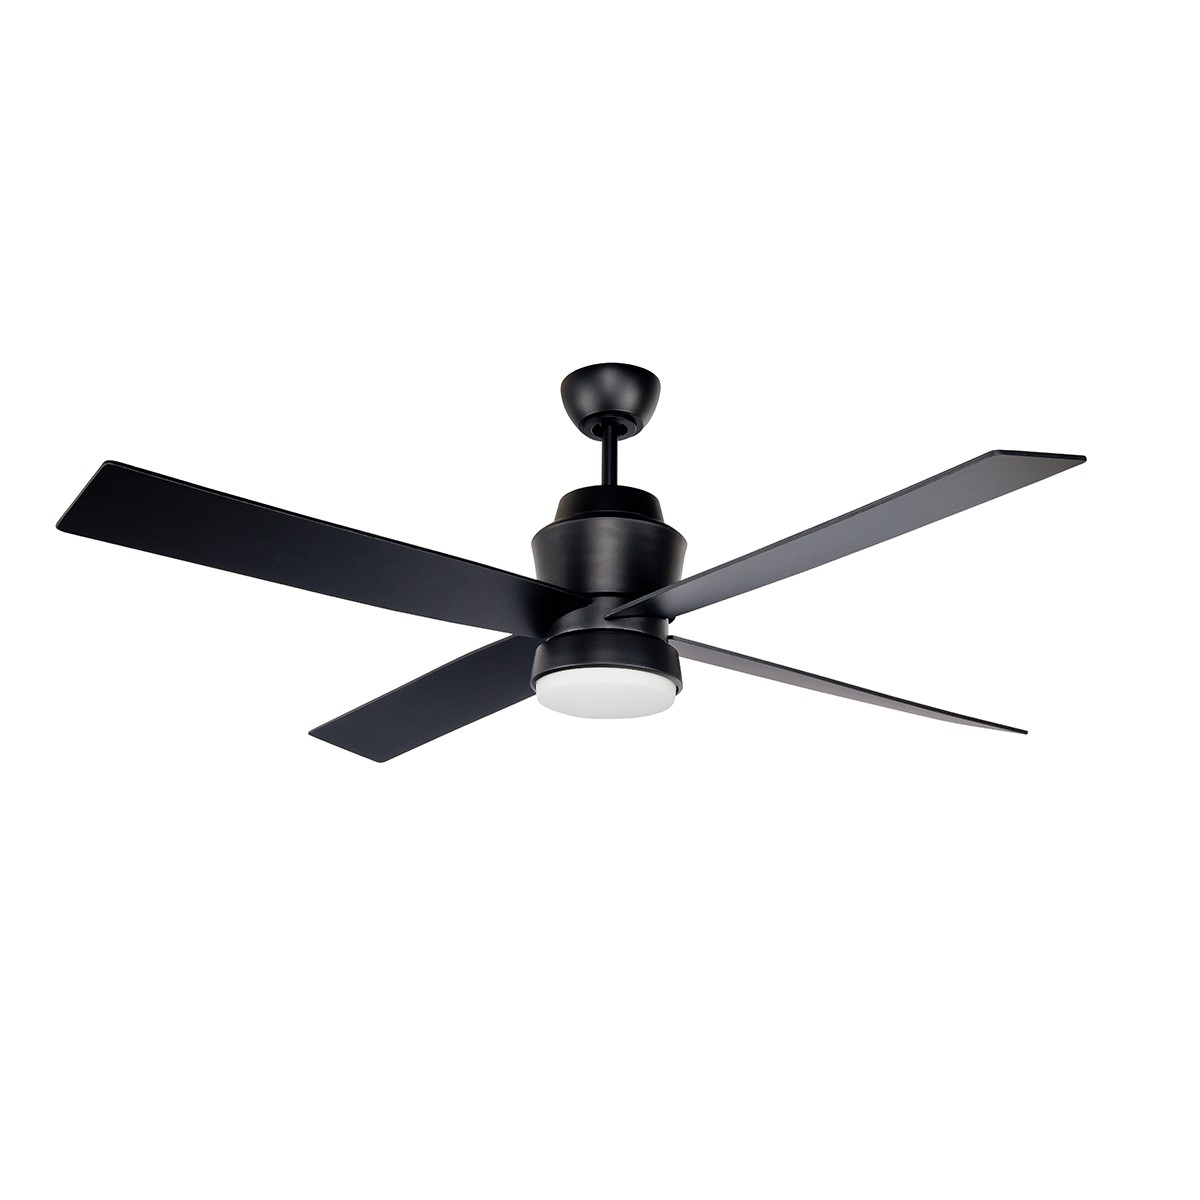 Quorum Outdoor Ceiling Fans For Well Known Impressive Black Outdoor Ceiling Fan Prologue Stori Modern Fans With (View 17 of 20)